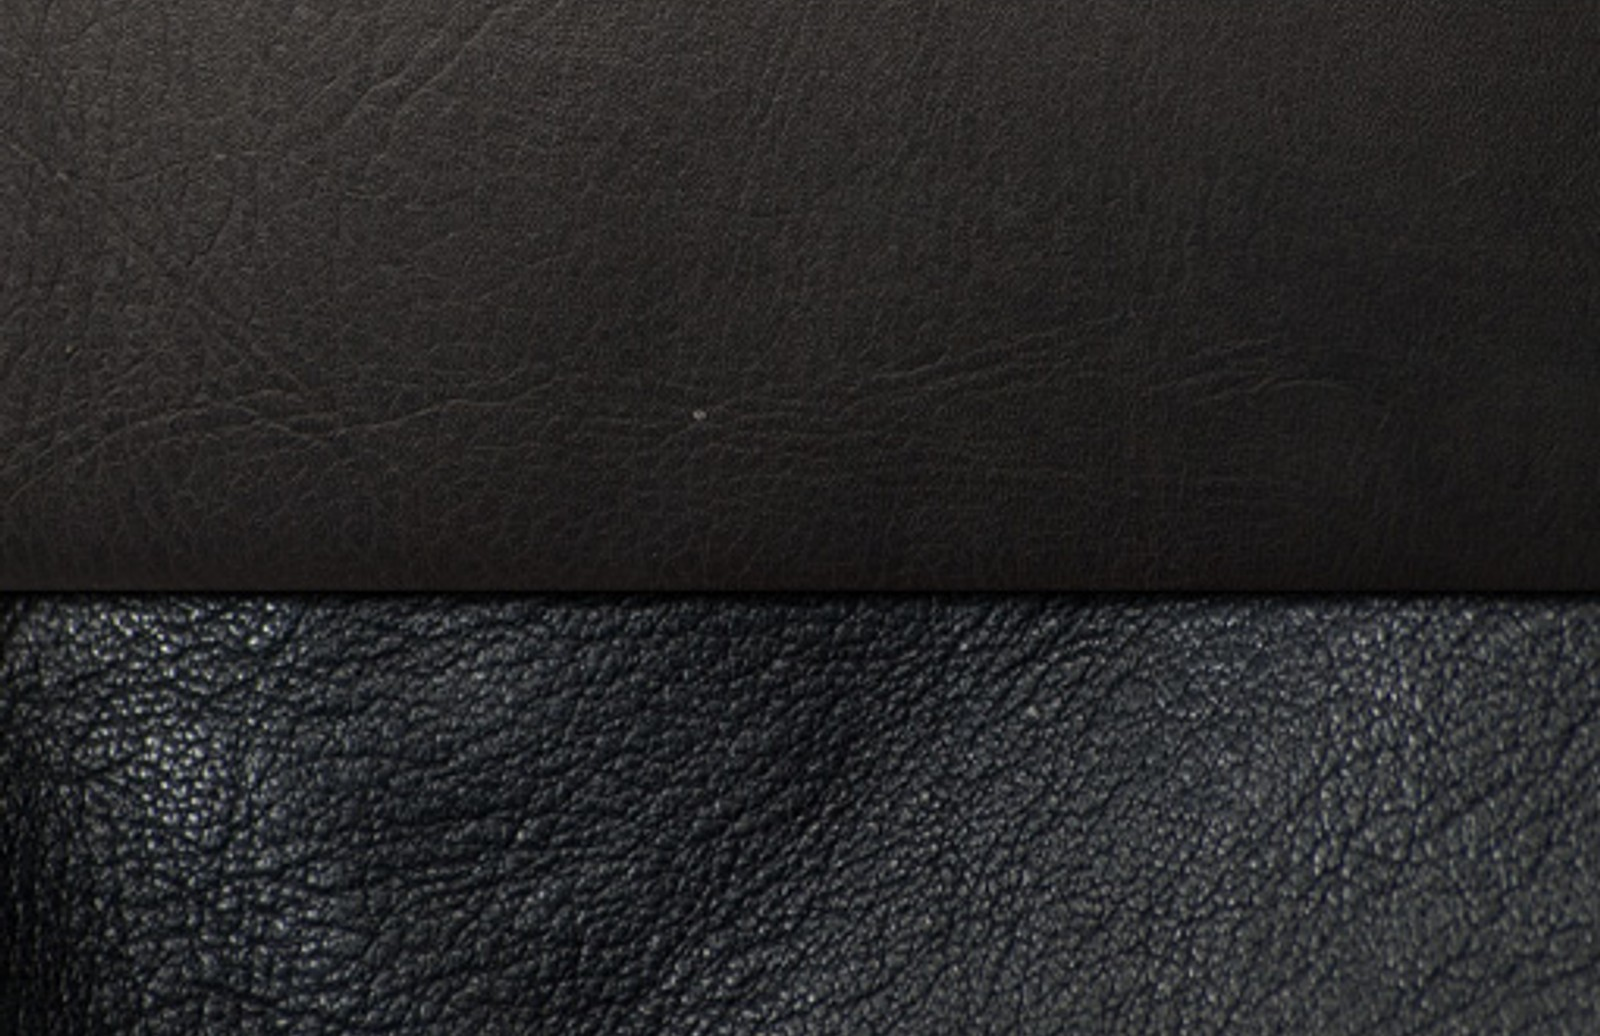 Leather Texture Preview